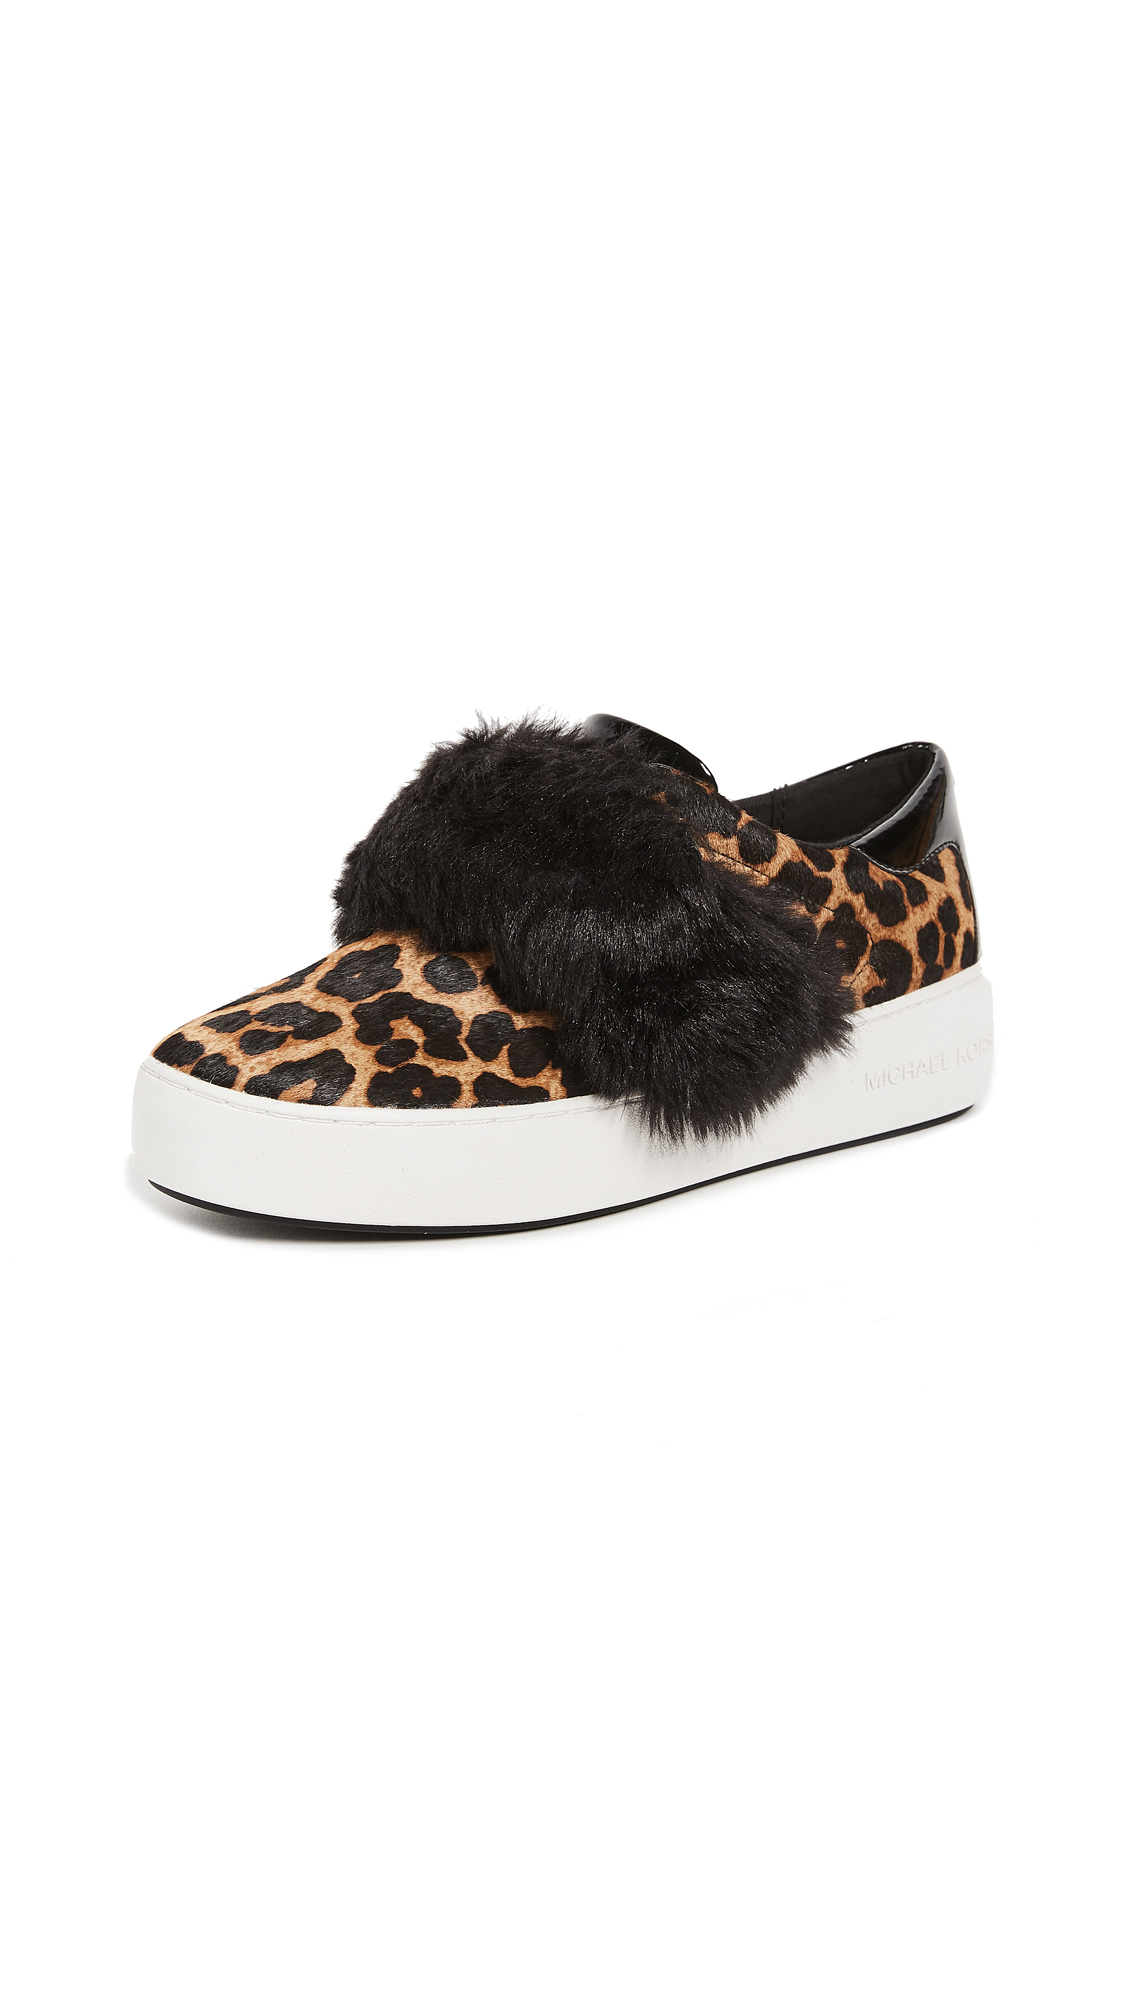 MICHAEL Michael Kors Maven Faux Fur Haircalf Platform Sneakers - Natural/Black